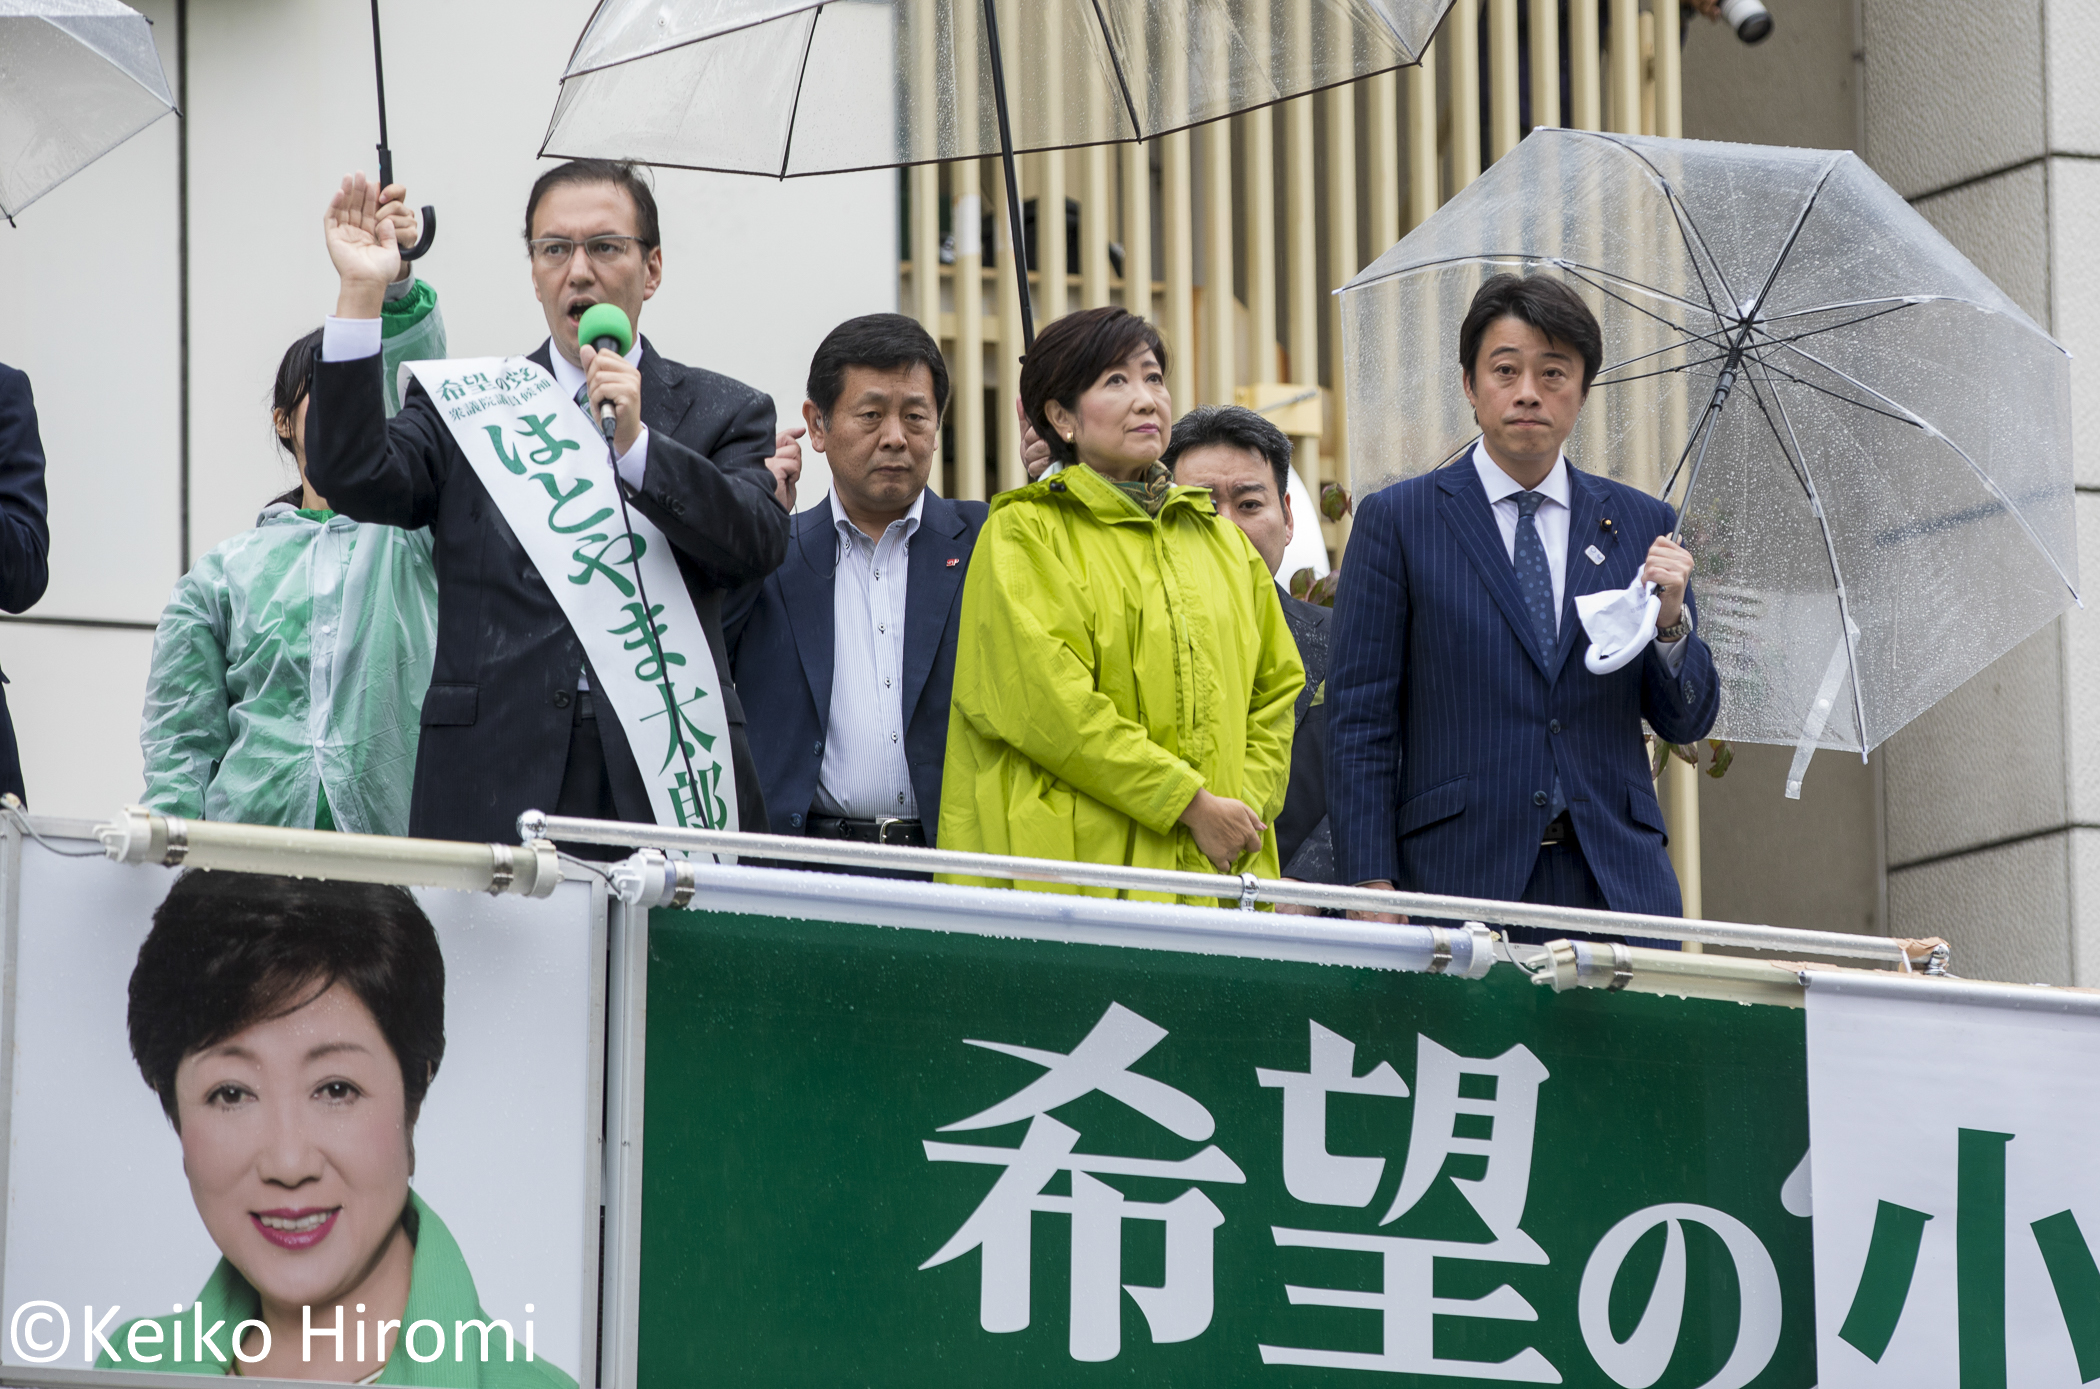 Yuriko Koike, Tokyo Governor and leader of Party of Hope, campaigning in Asakusa, Tokyo, Japan on October 15, 2017.